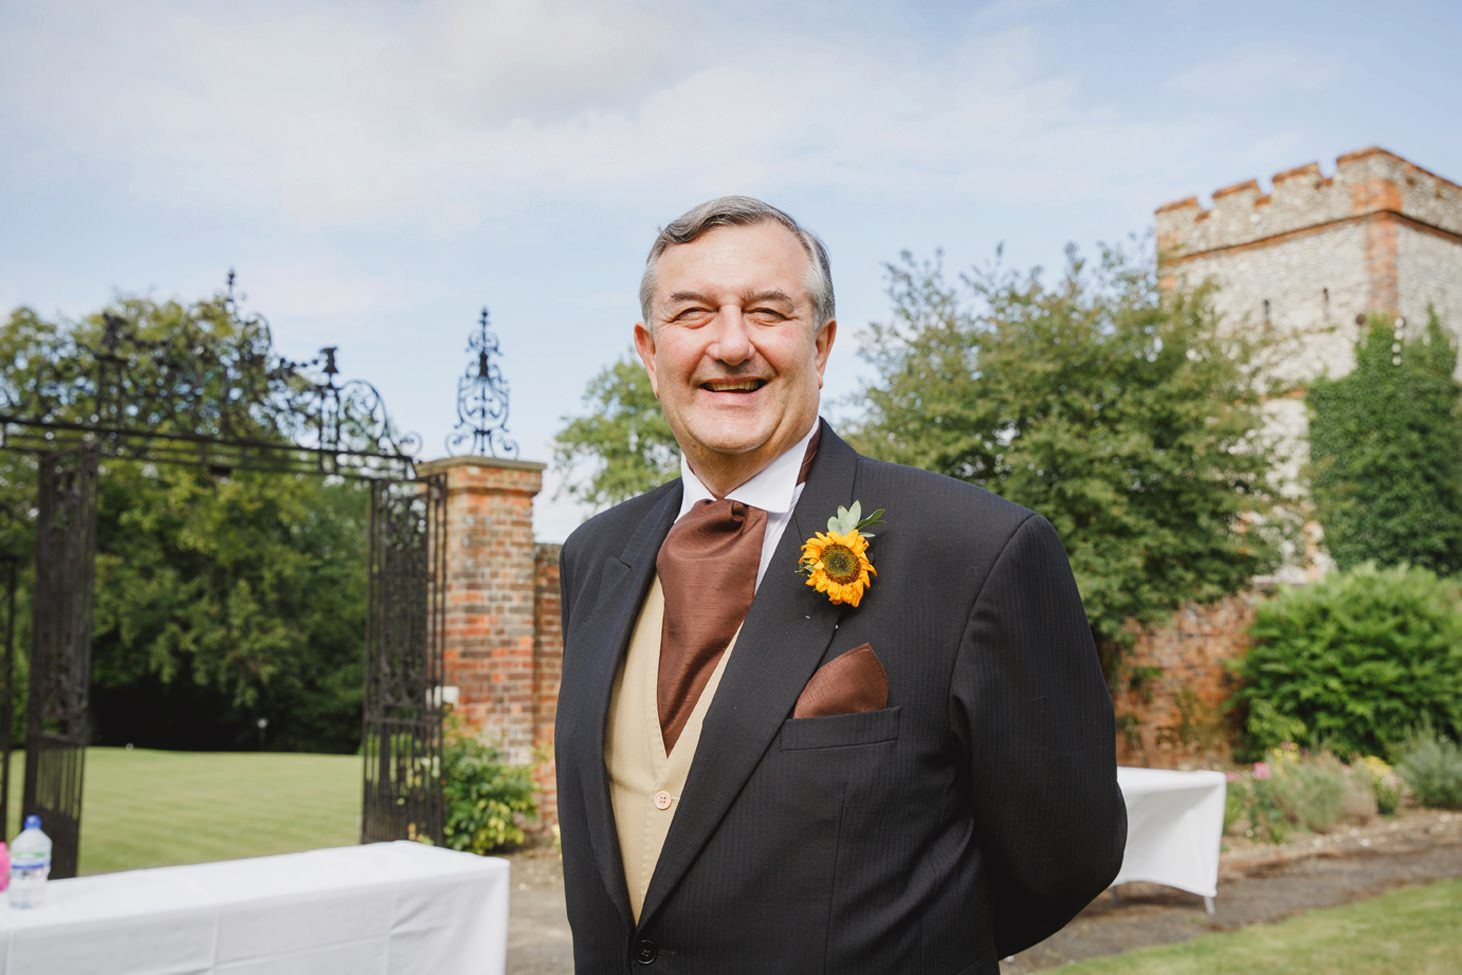 Wycombe Abbey wedding photography father of the bride